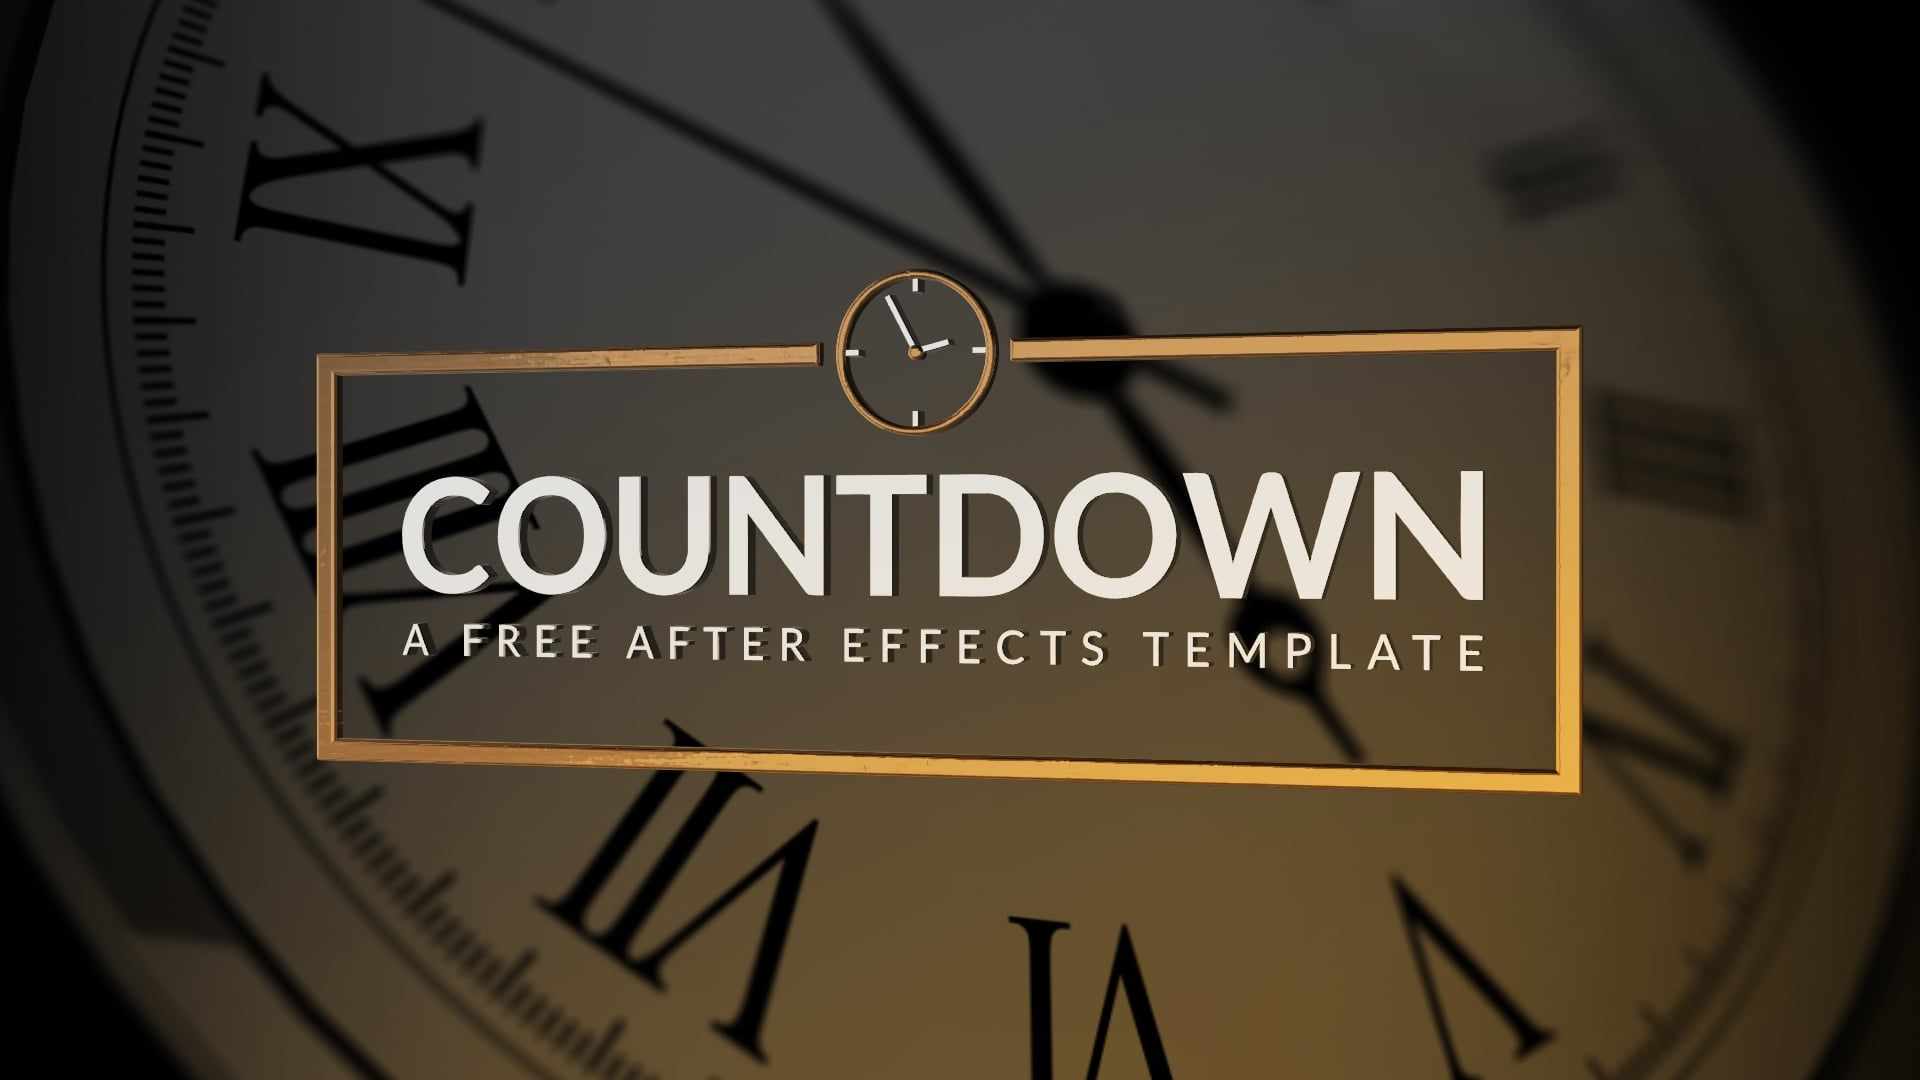 get your free clock template from our download page httpwwwrocketstockcomblogfree after effects template countdown